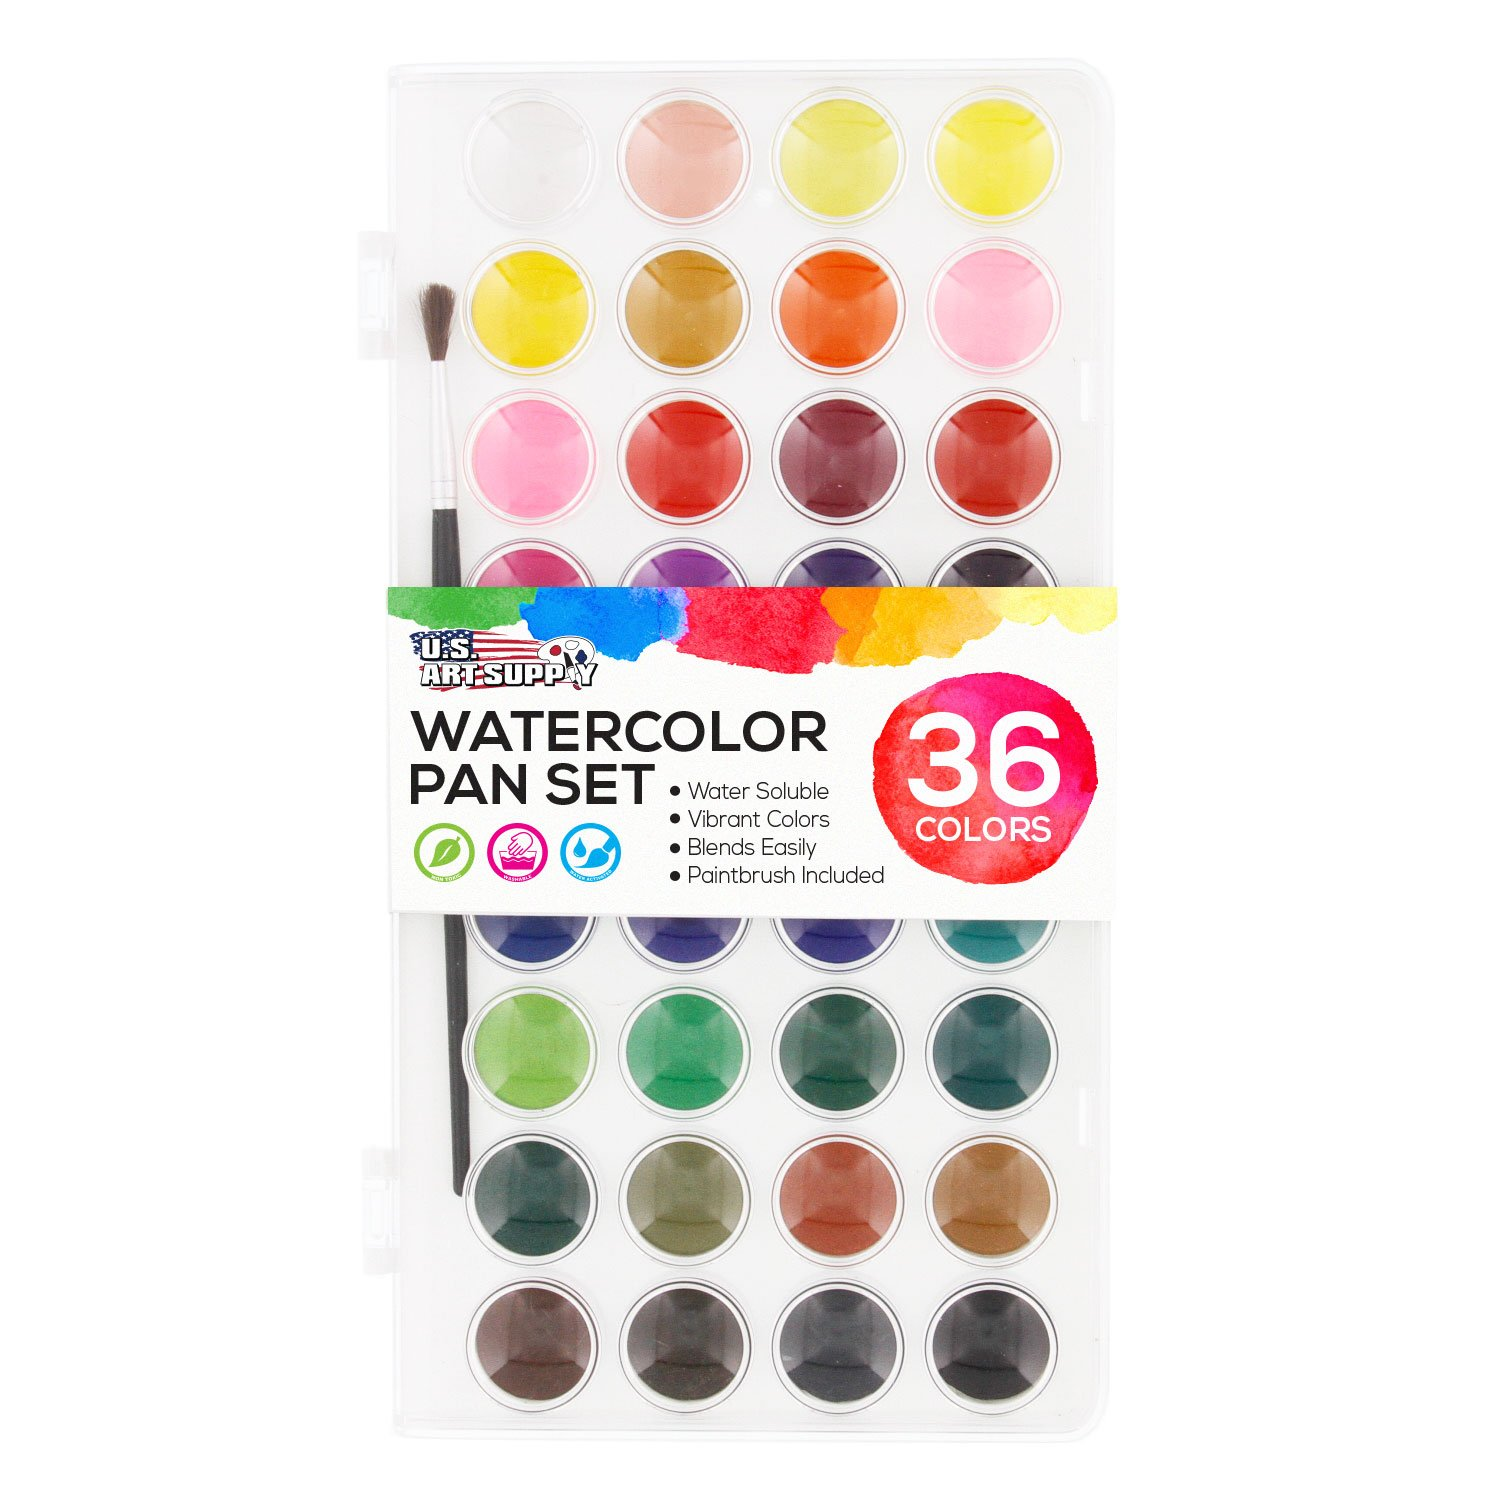 U.S. Art Supply 36 Color Watercolor Artist Paint Set with Plastic Palette Lid Case and Paintbrush - Watersoluable Cakes